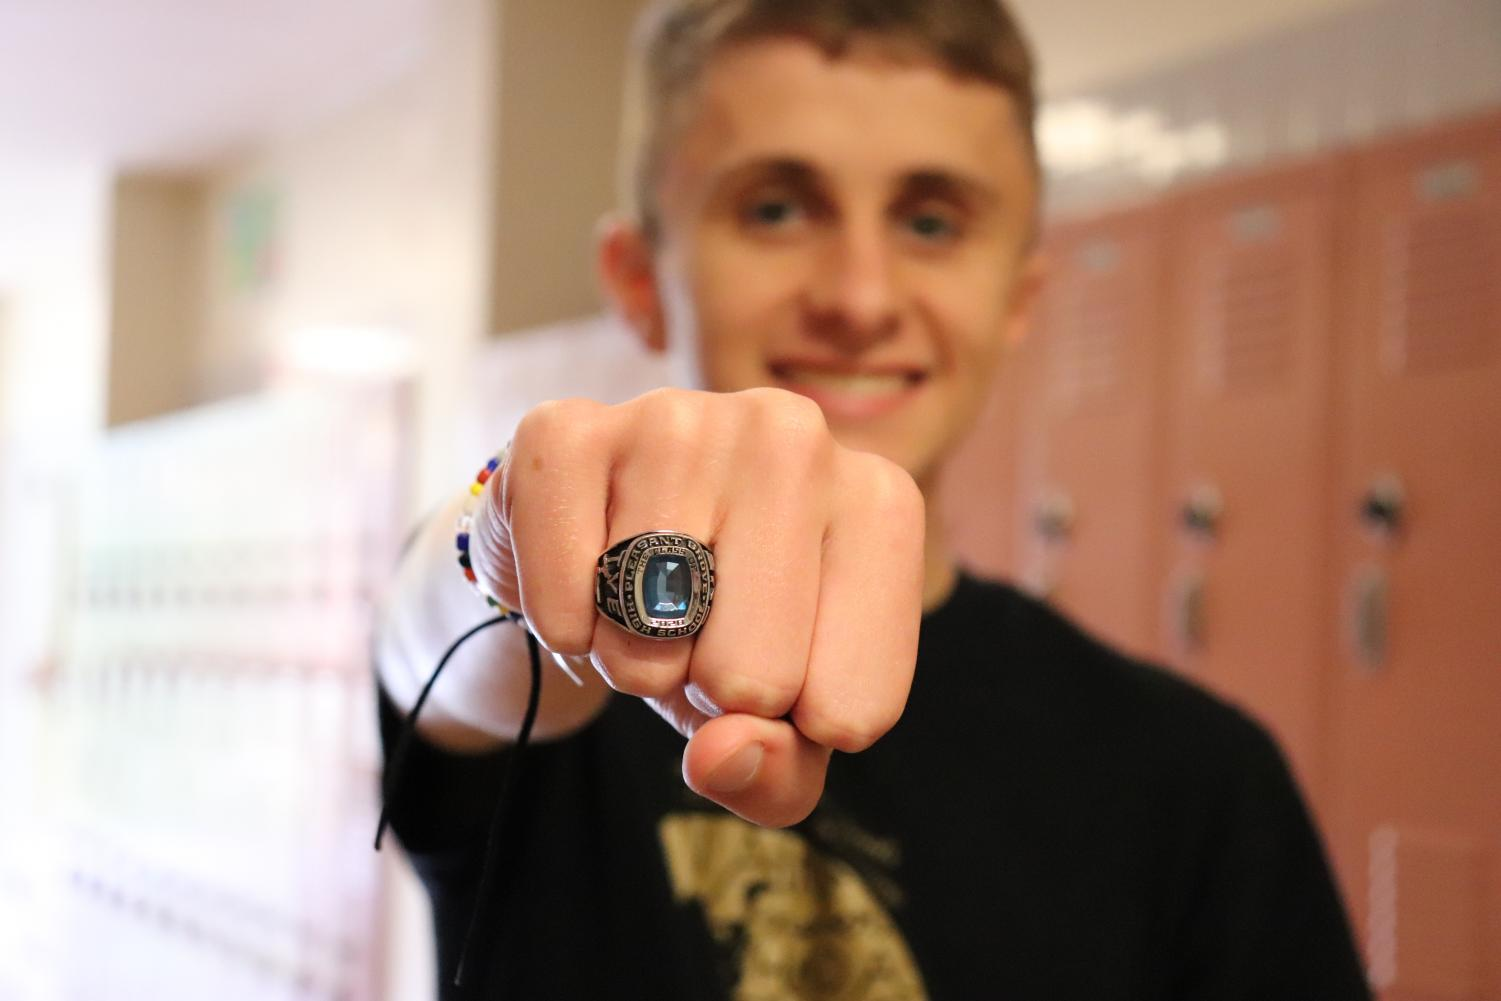 Tommy Tye poses with his class ring that he designed and ordered his junior year. Photo by SHoehn.